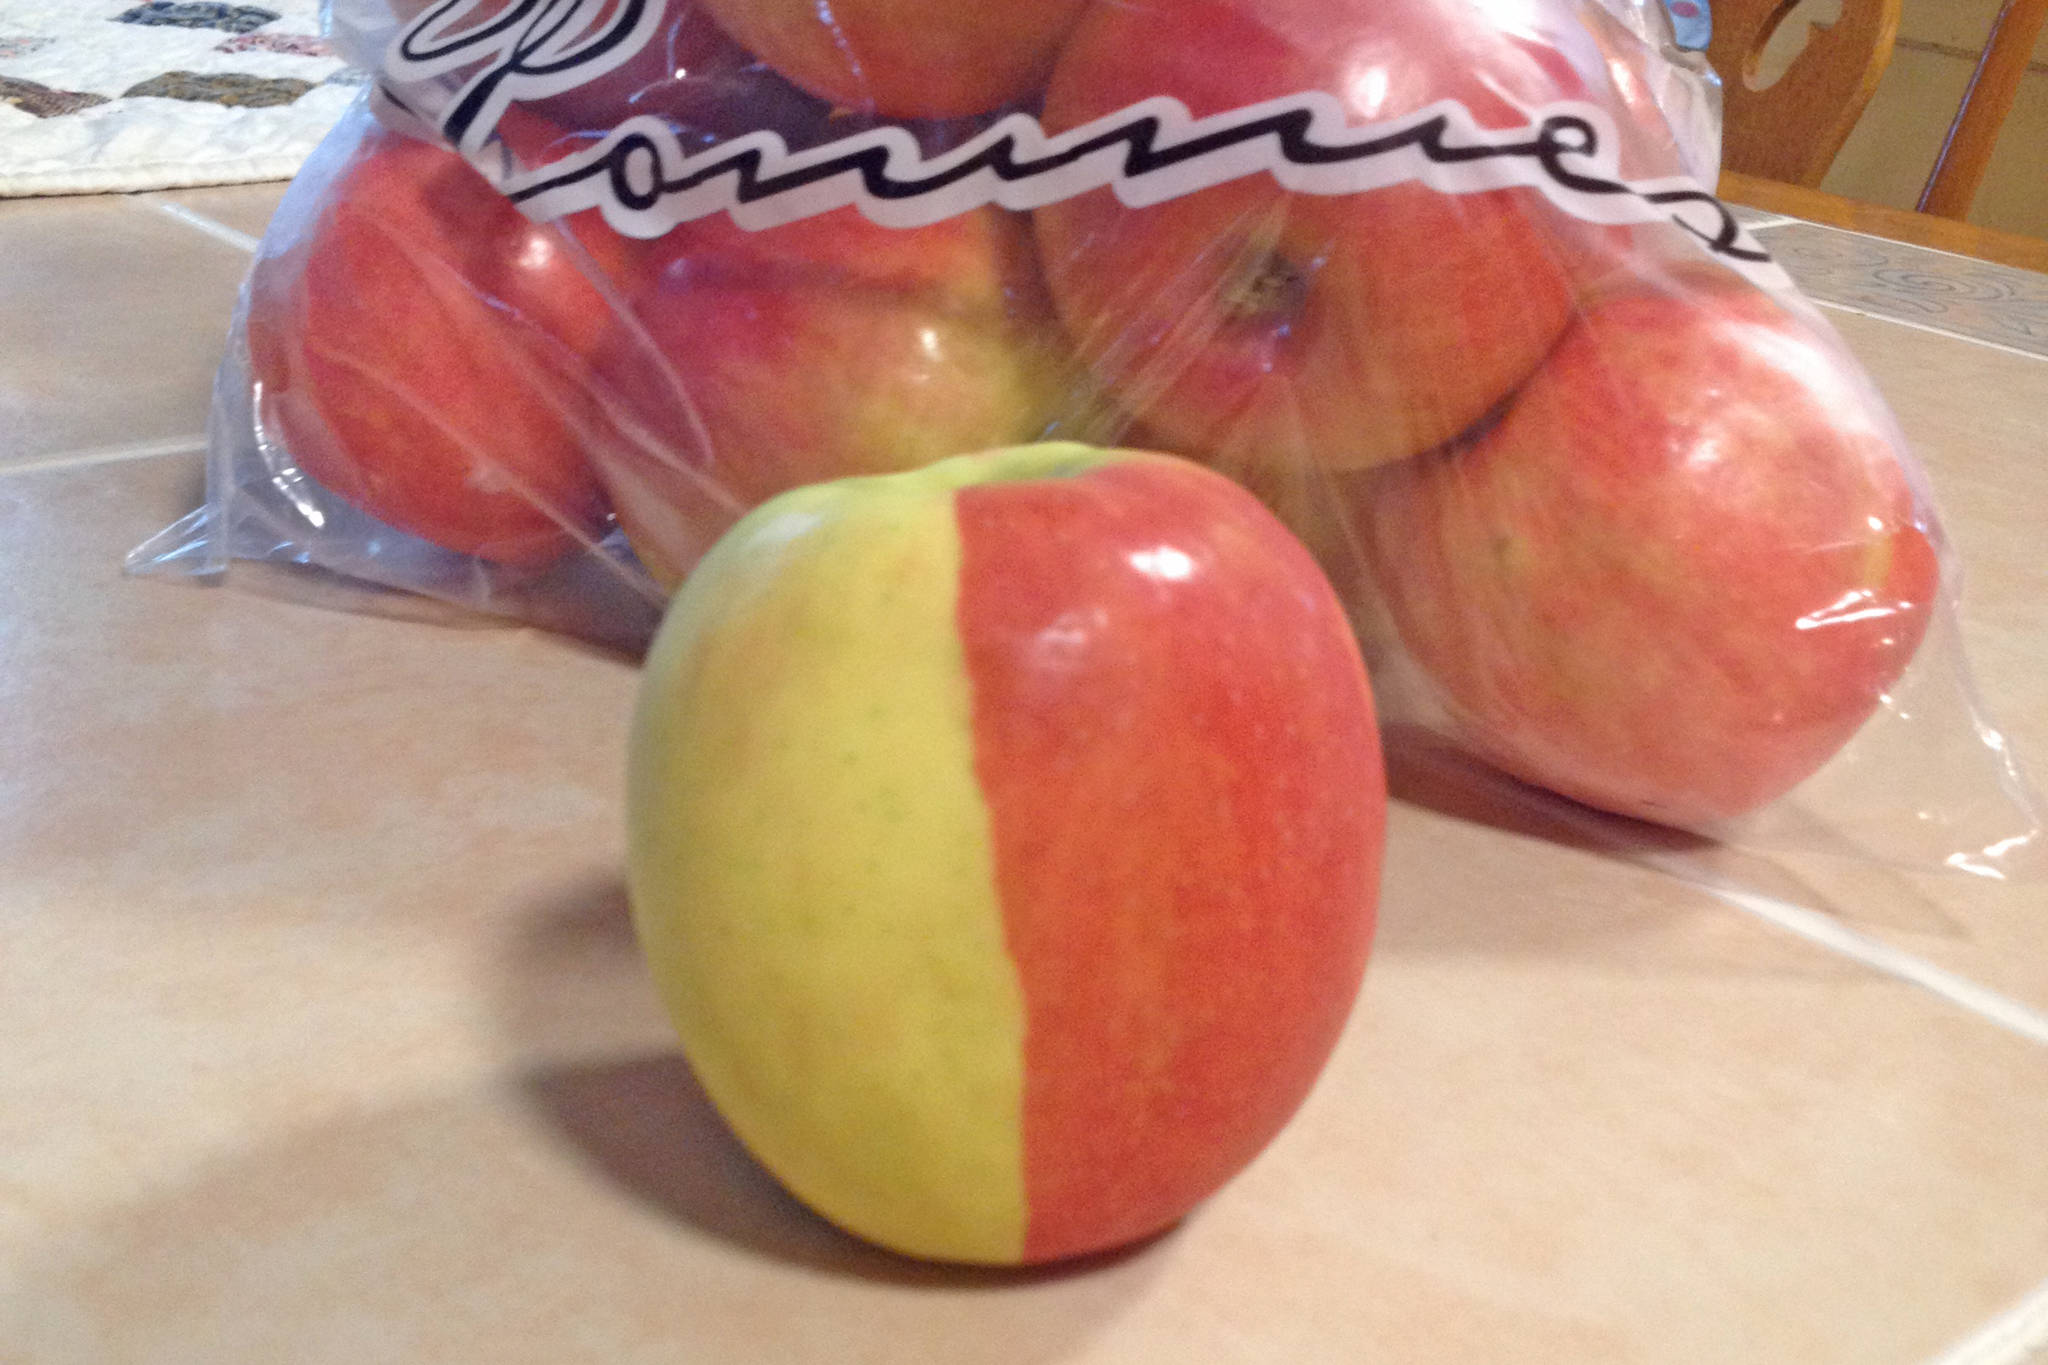 Lori Verhelst of Telkwa got a big surprise when she brought home a bag of Pink Lady apples on Wednesday, a perfectly half red, half yellow fruit. (Contributed photo)